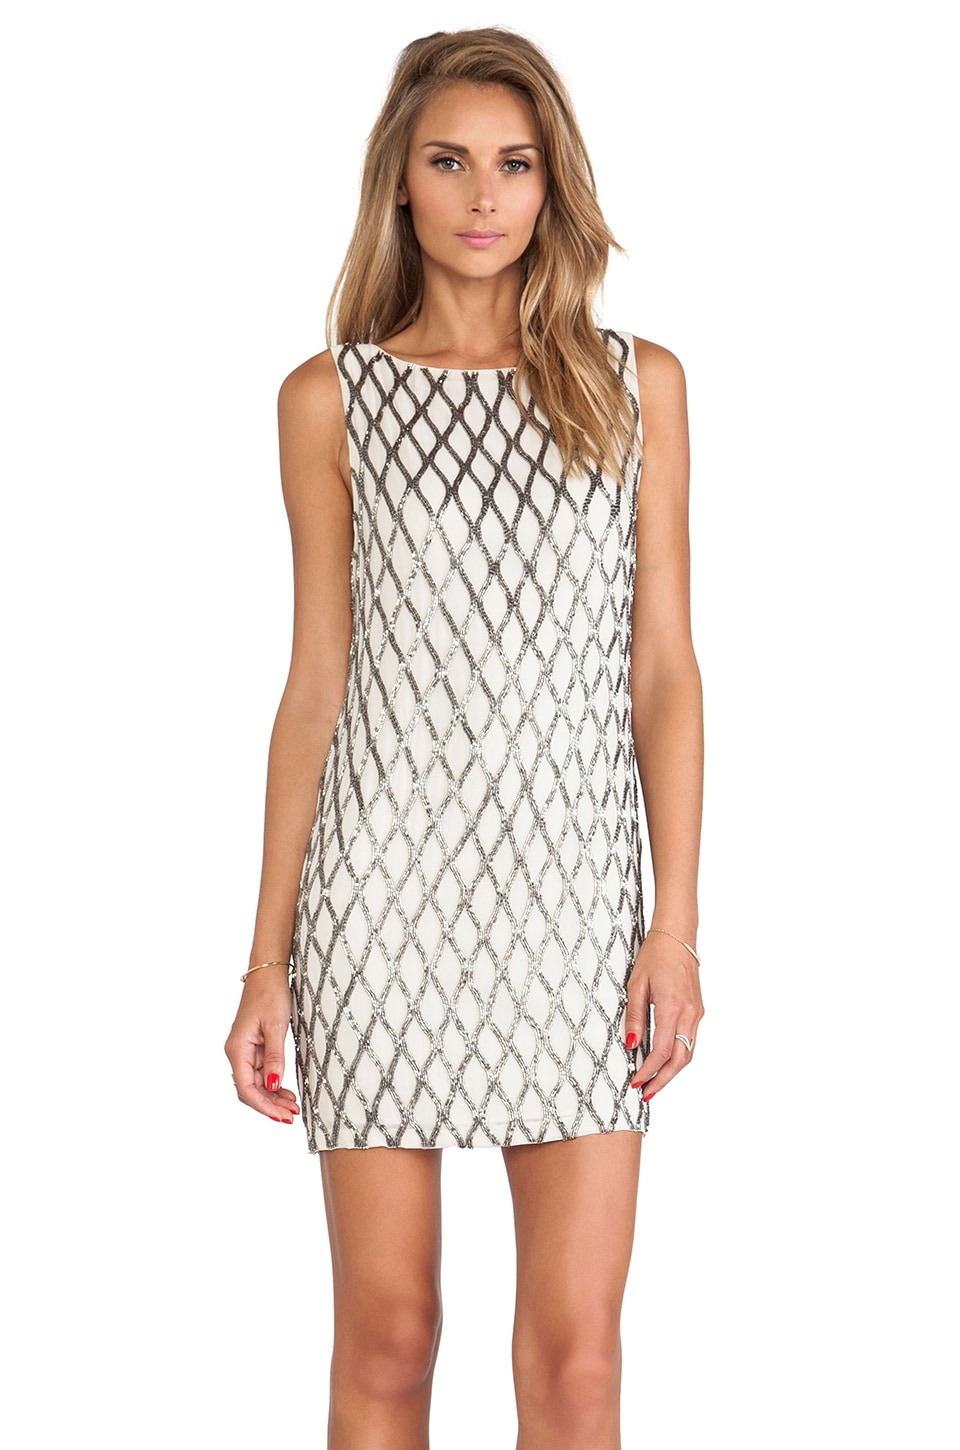 Alice + Olivia Dalyla Beaded Dress in Stone & Gunmetal